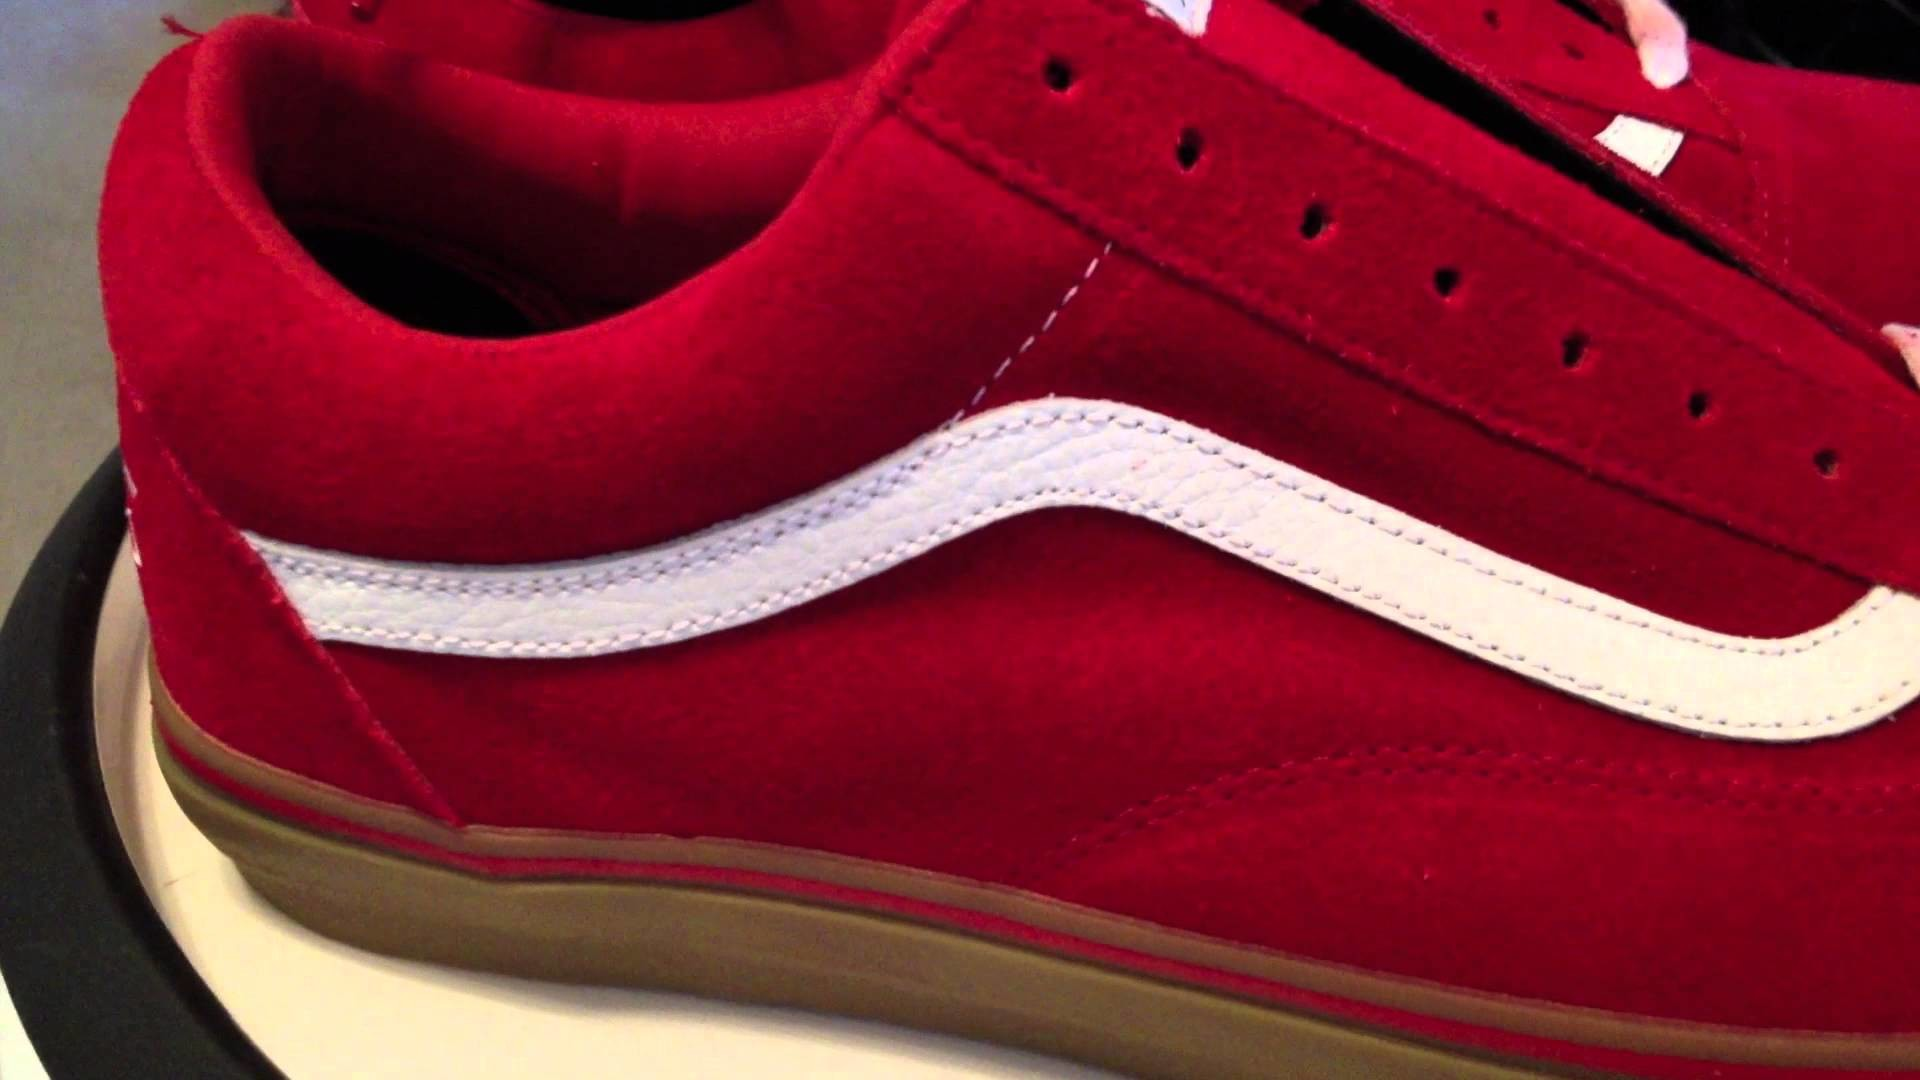 """Vans Syndicate Old Skool Pro """"S"""" – (Golf Wang) Red / Gum colorway – Odd  Future 6-12-13 – YouTube"""